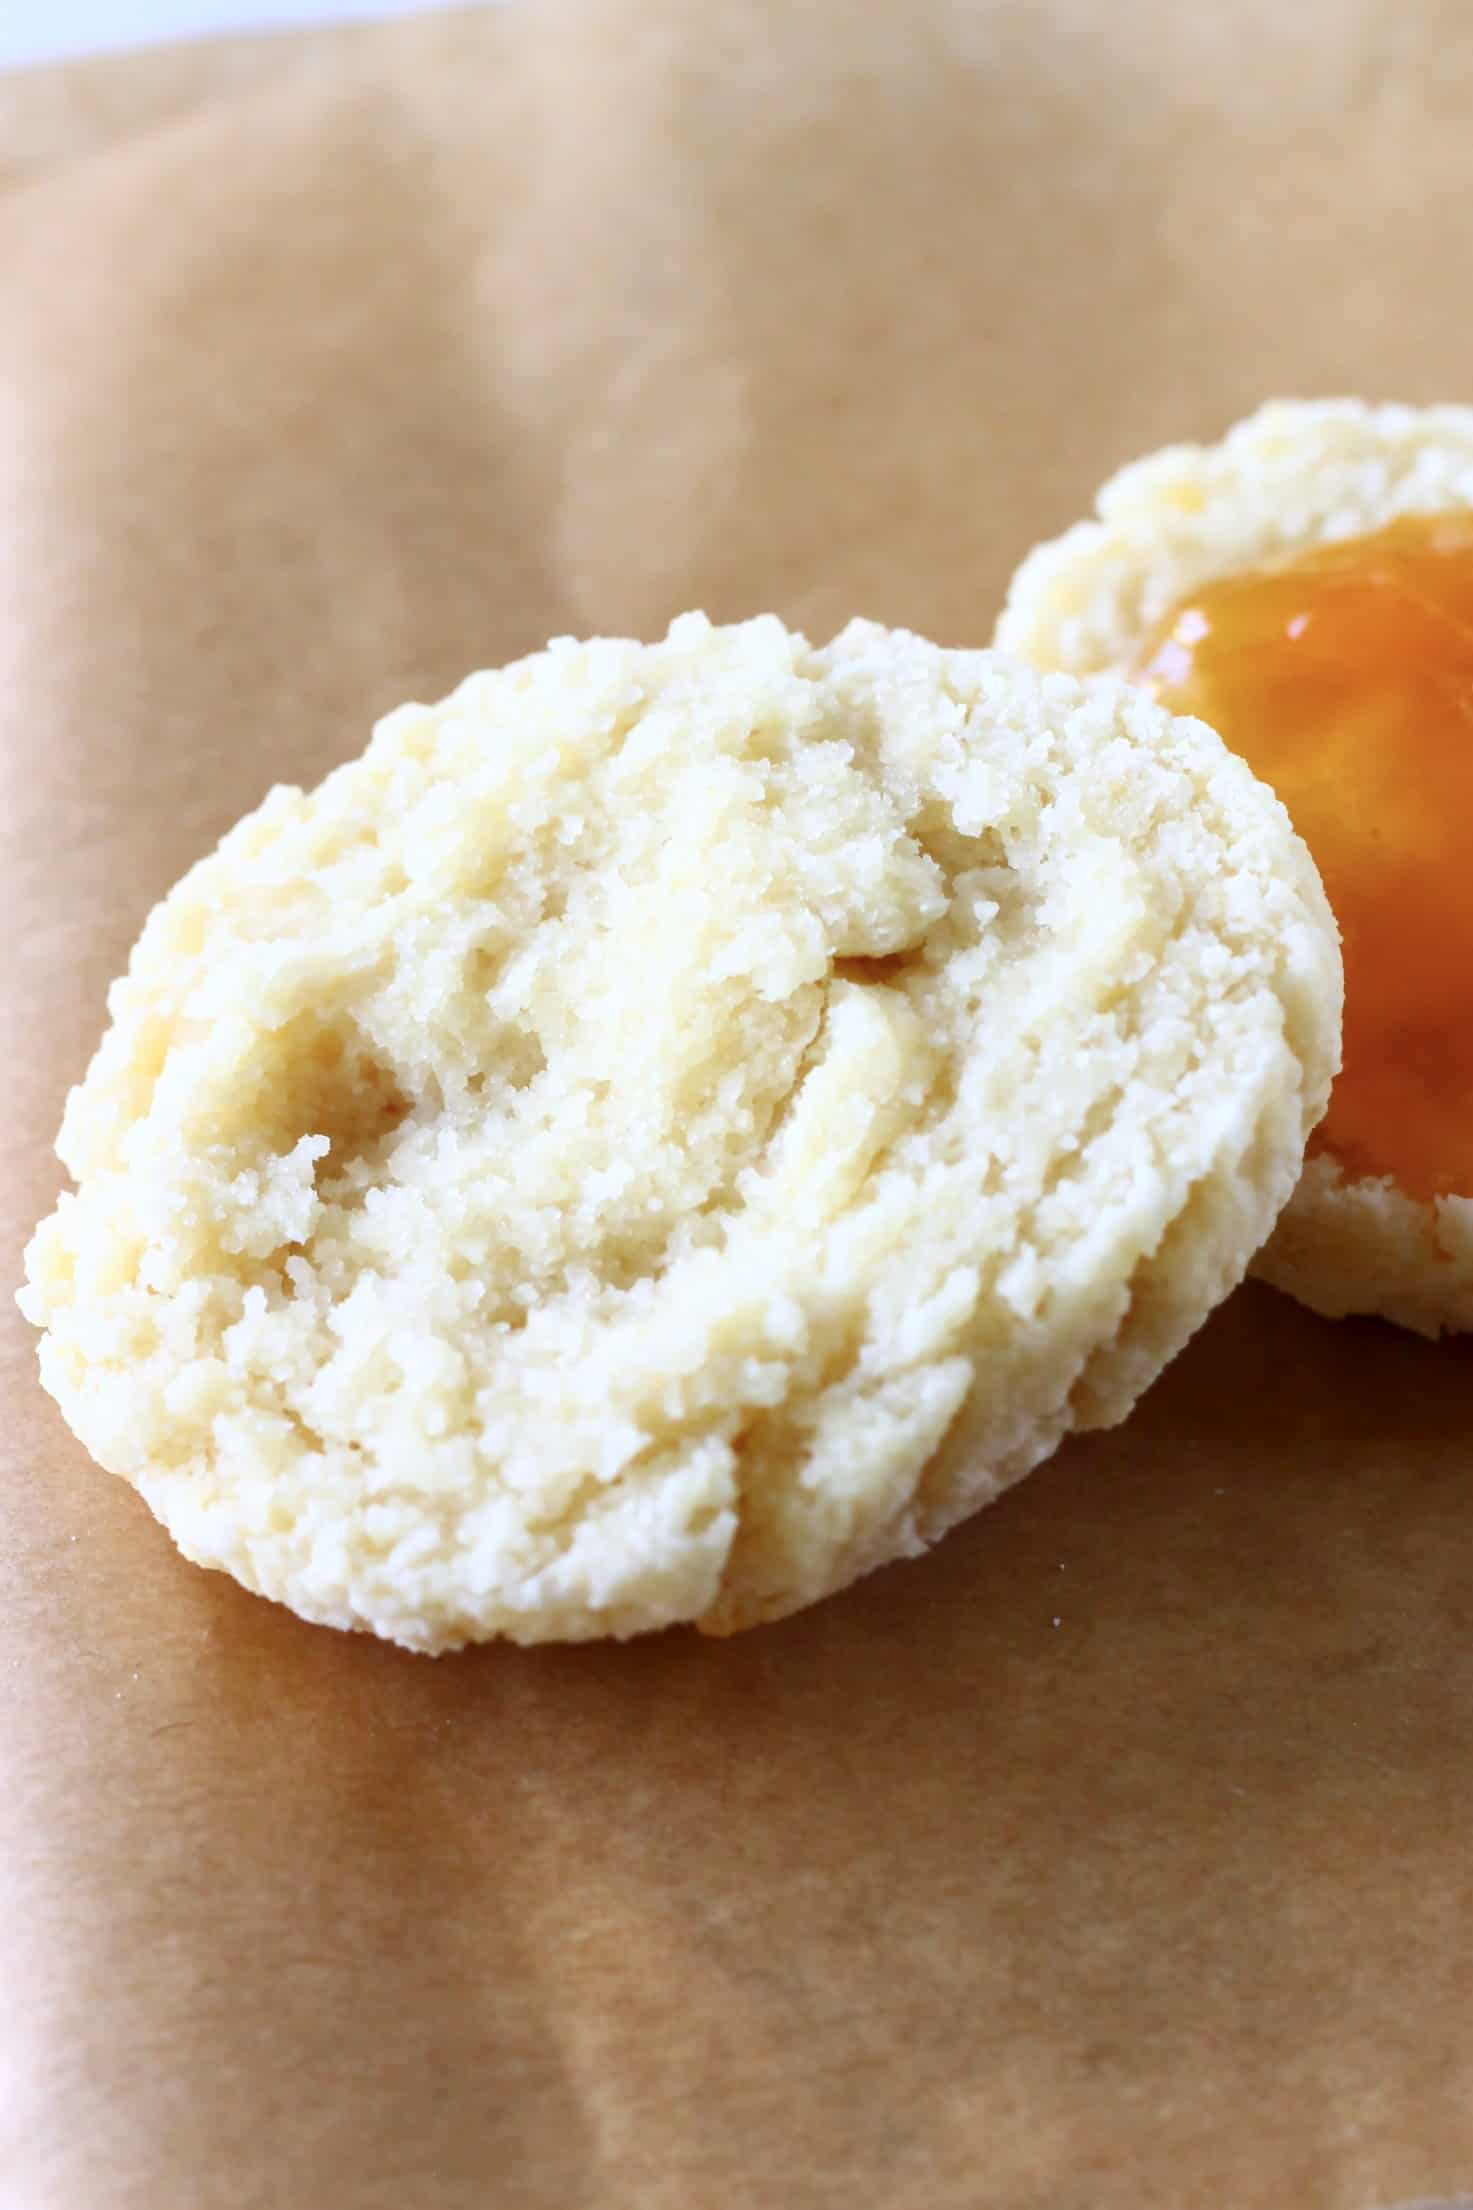 A halved gluten-free vegan biscuit with one half spread with apricot jam